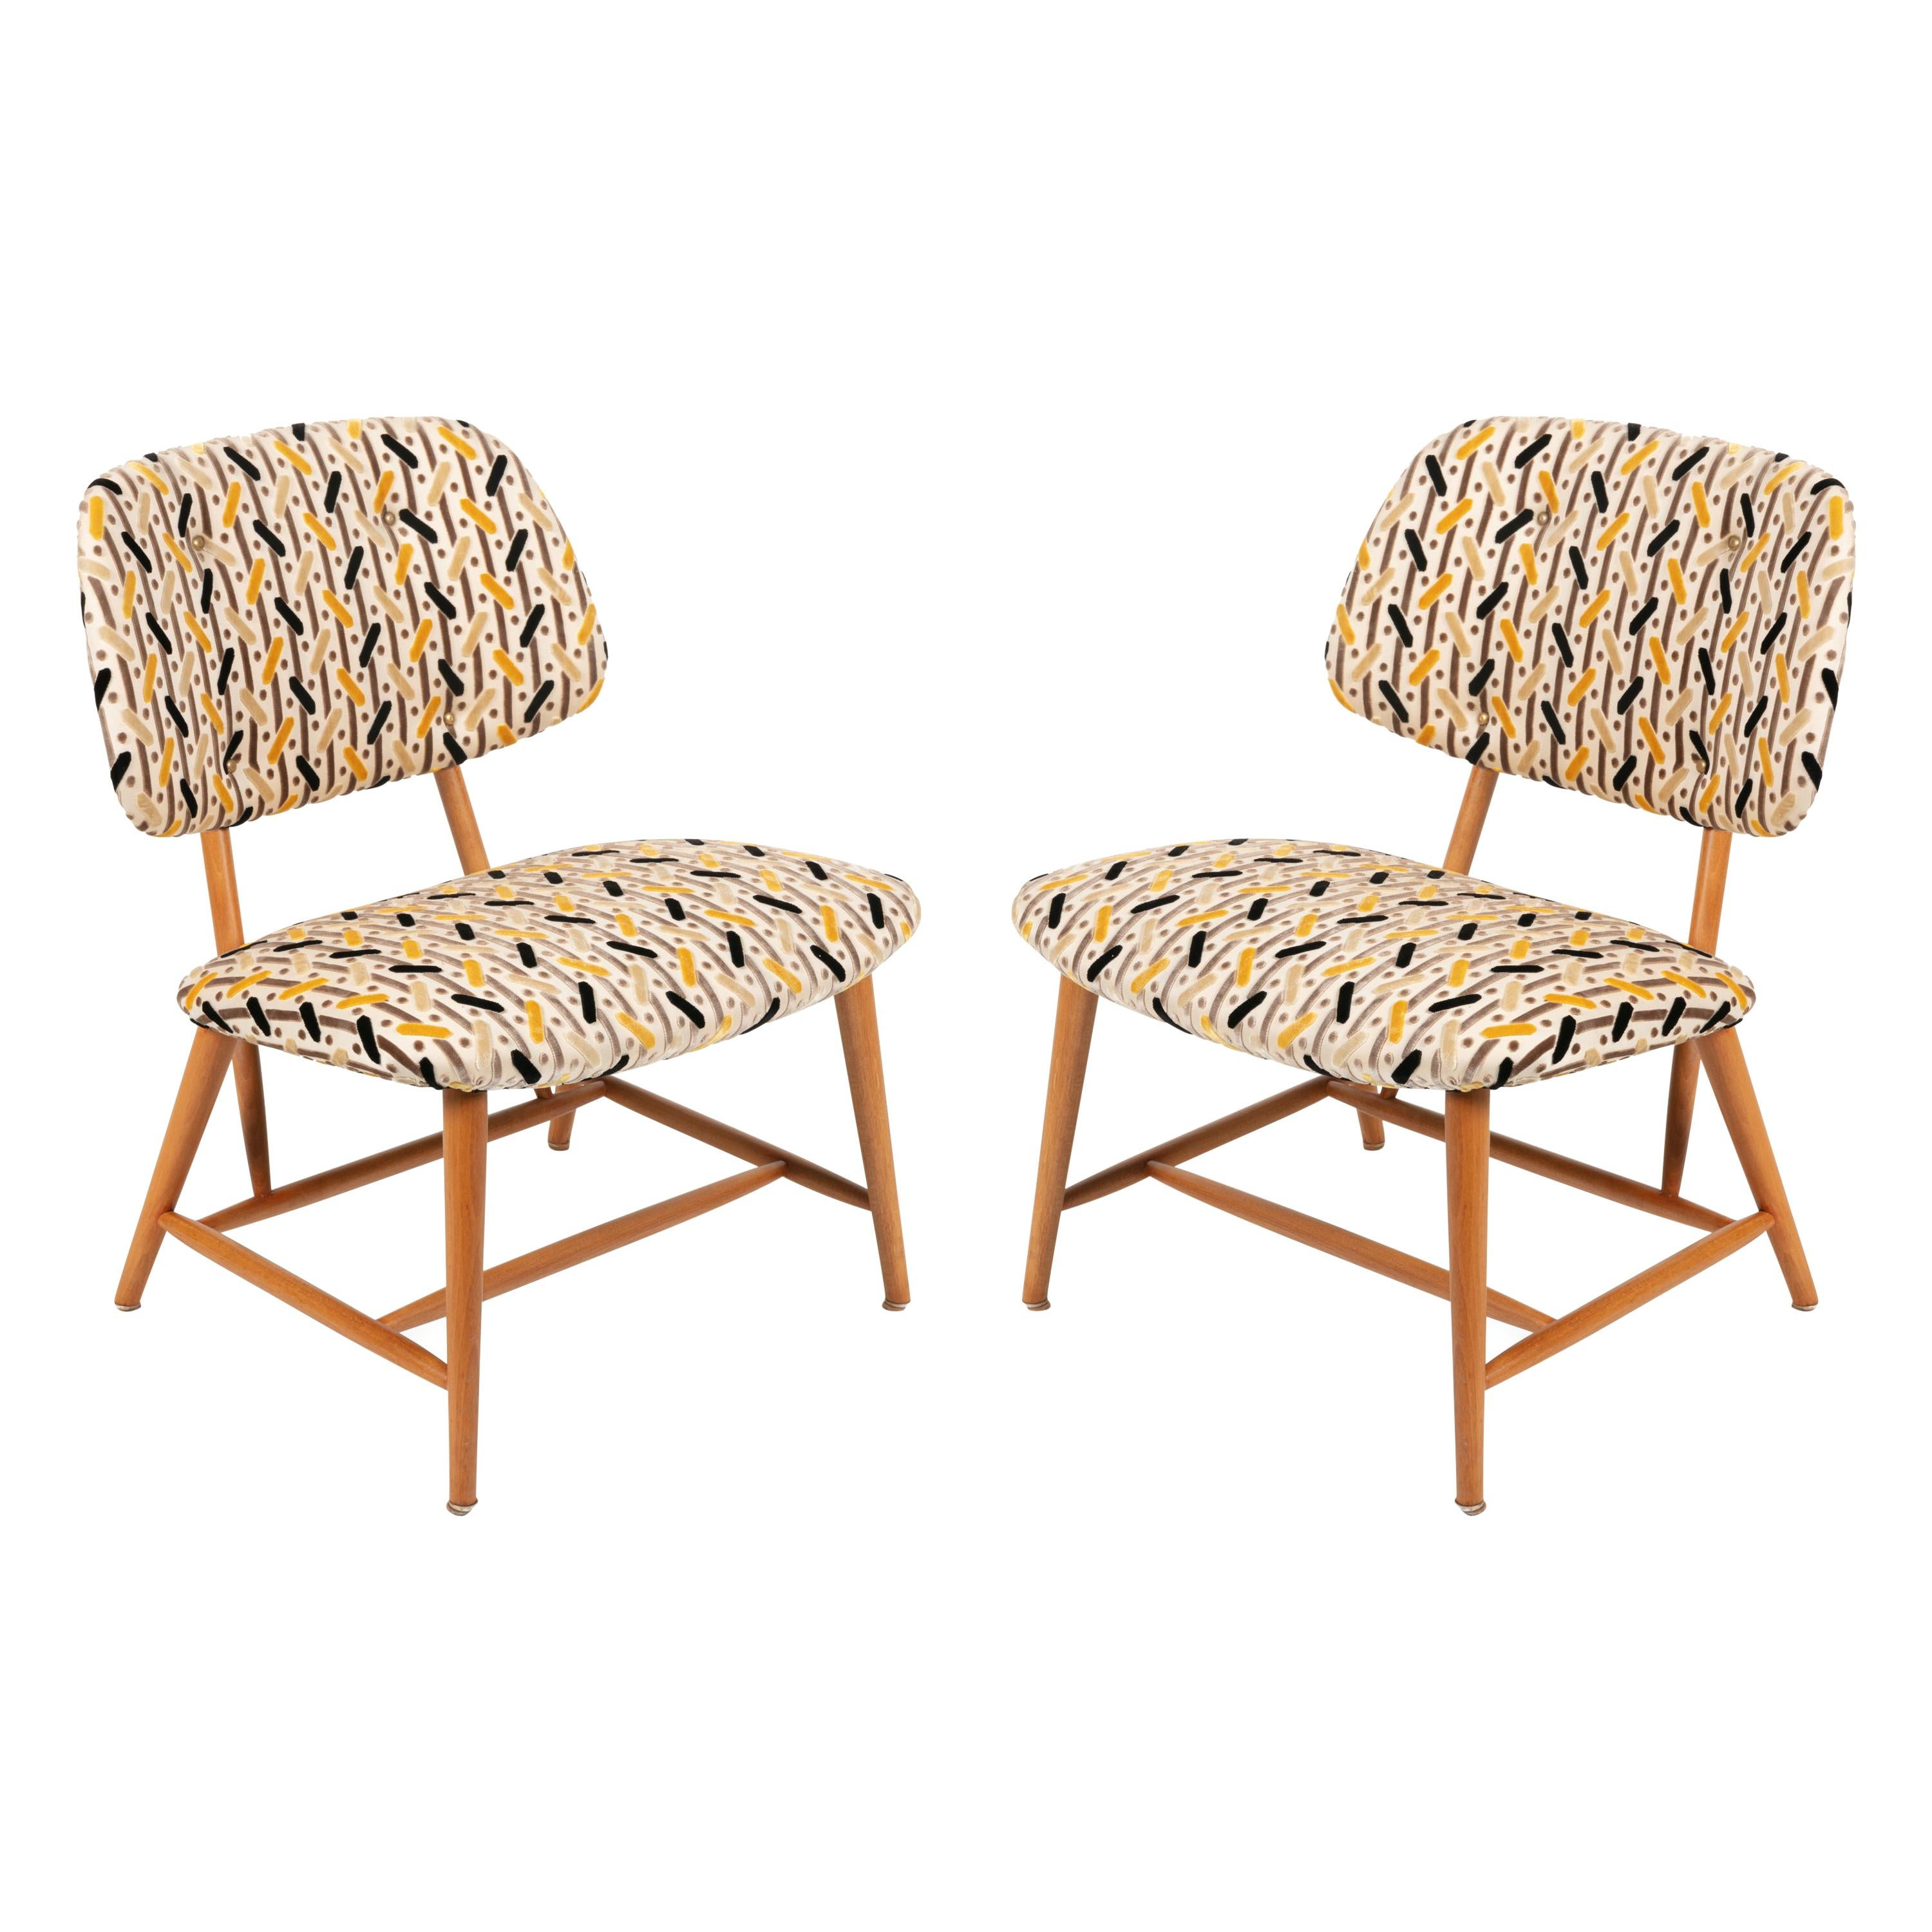 Armless Reupholstered Wood Framed Lounge Chairs, Sweden 1950s